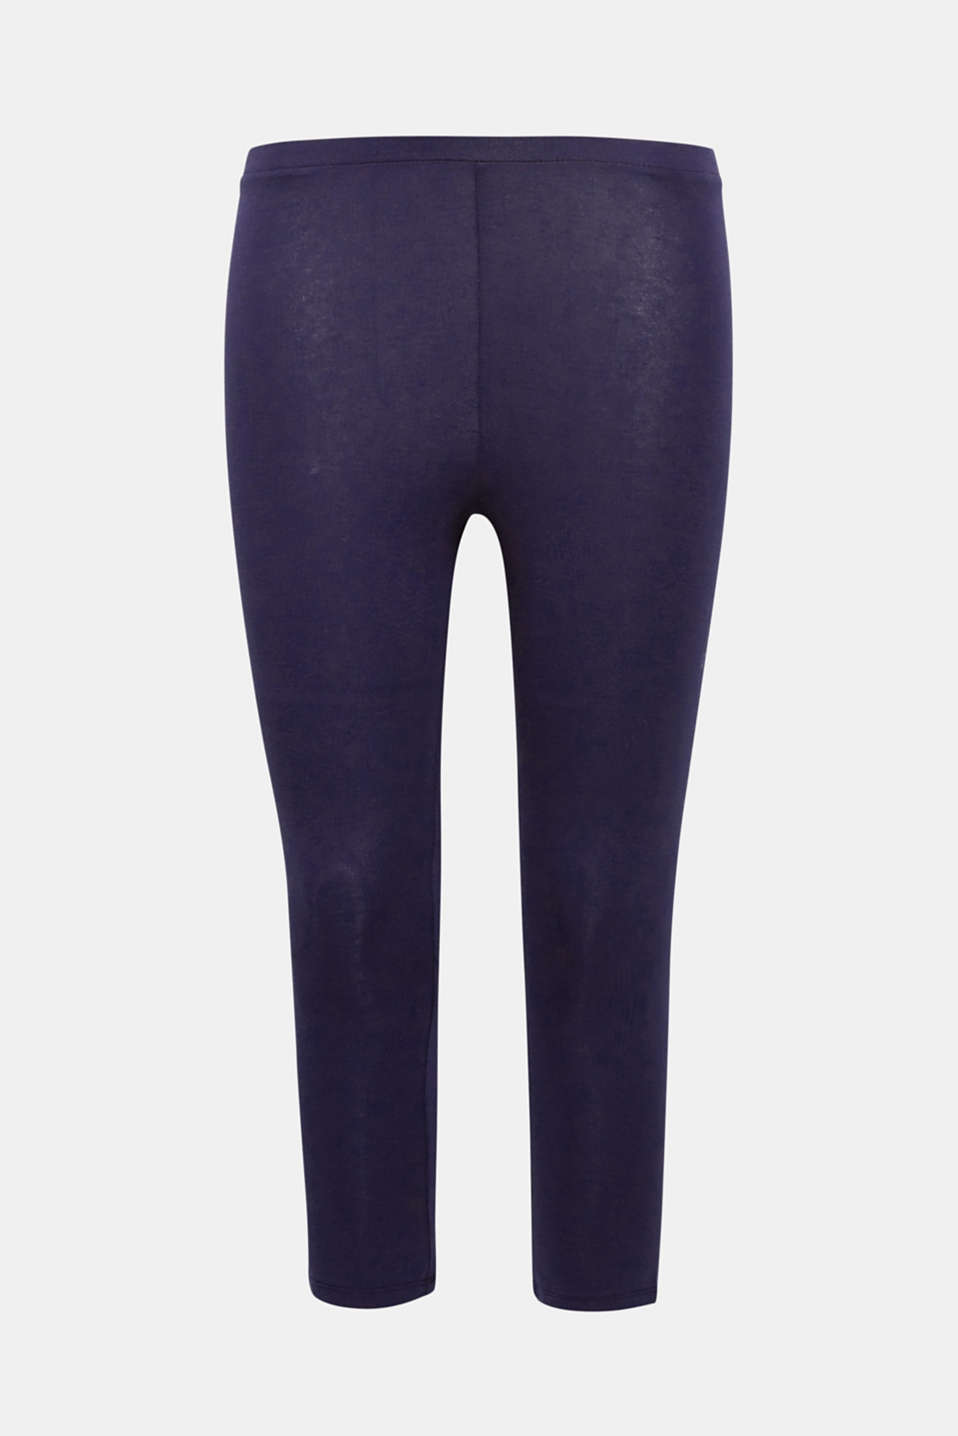 These 3/4 cotton leggings with added stretch for comfort are an indispensable basic.